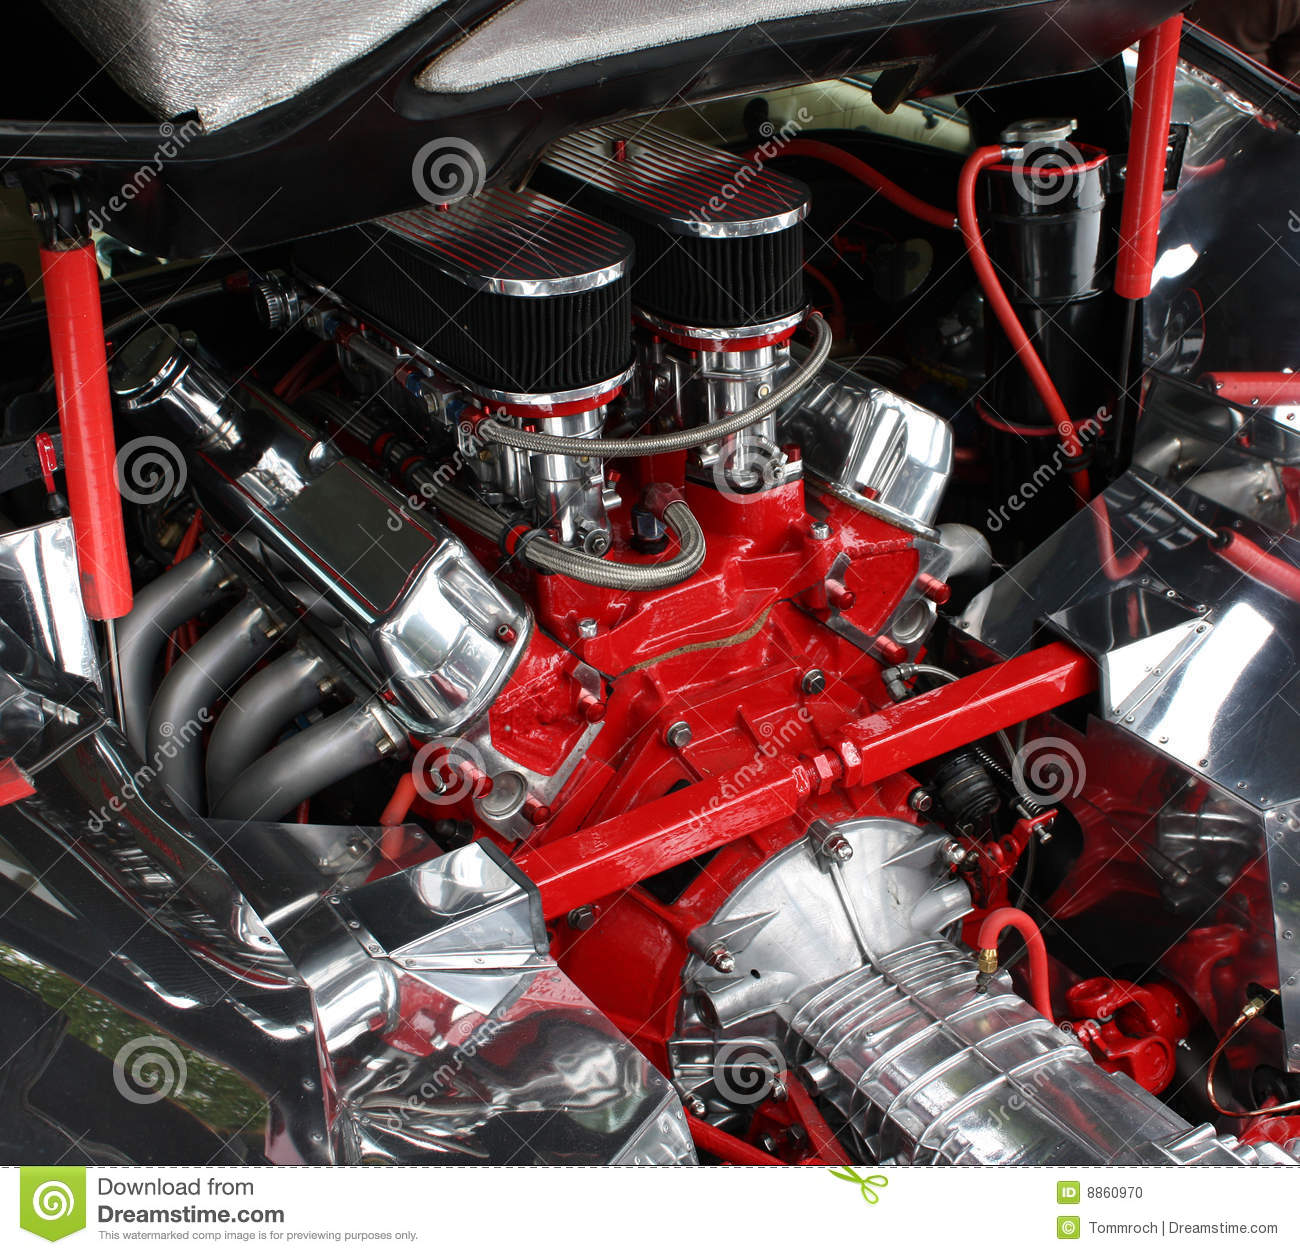 Old Car Wallpaper Download Luxury Car Engine Detail Stock Photo Image 8860970